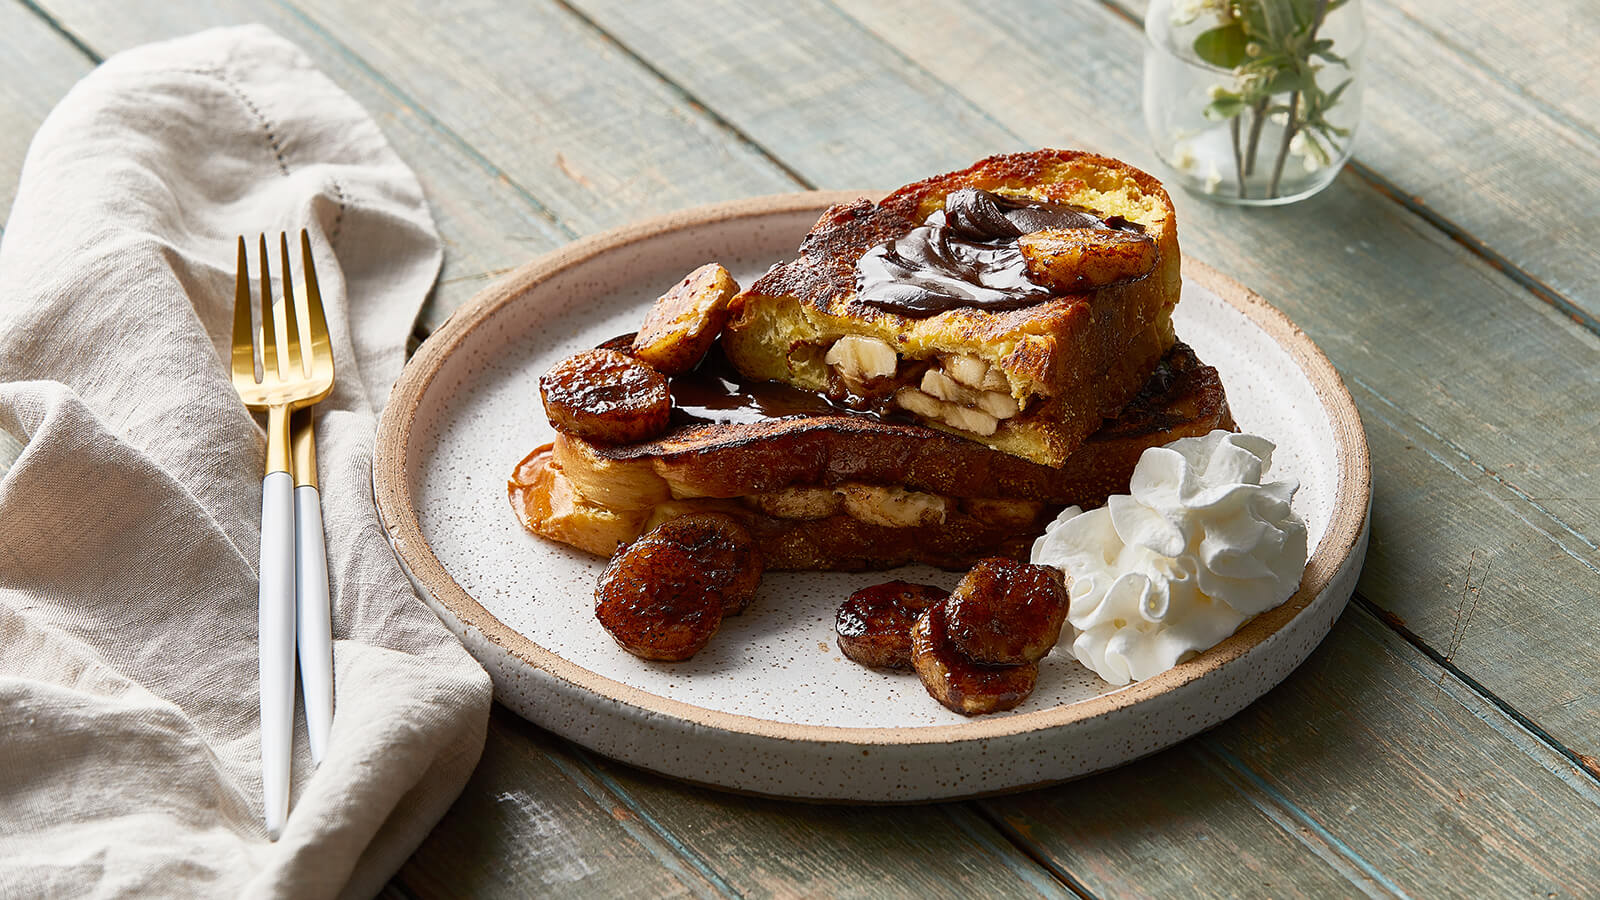 Banana Stuffed French Toast with Dark Chocolate